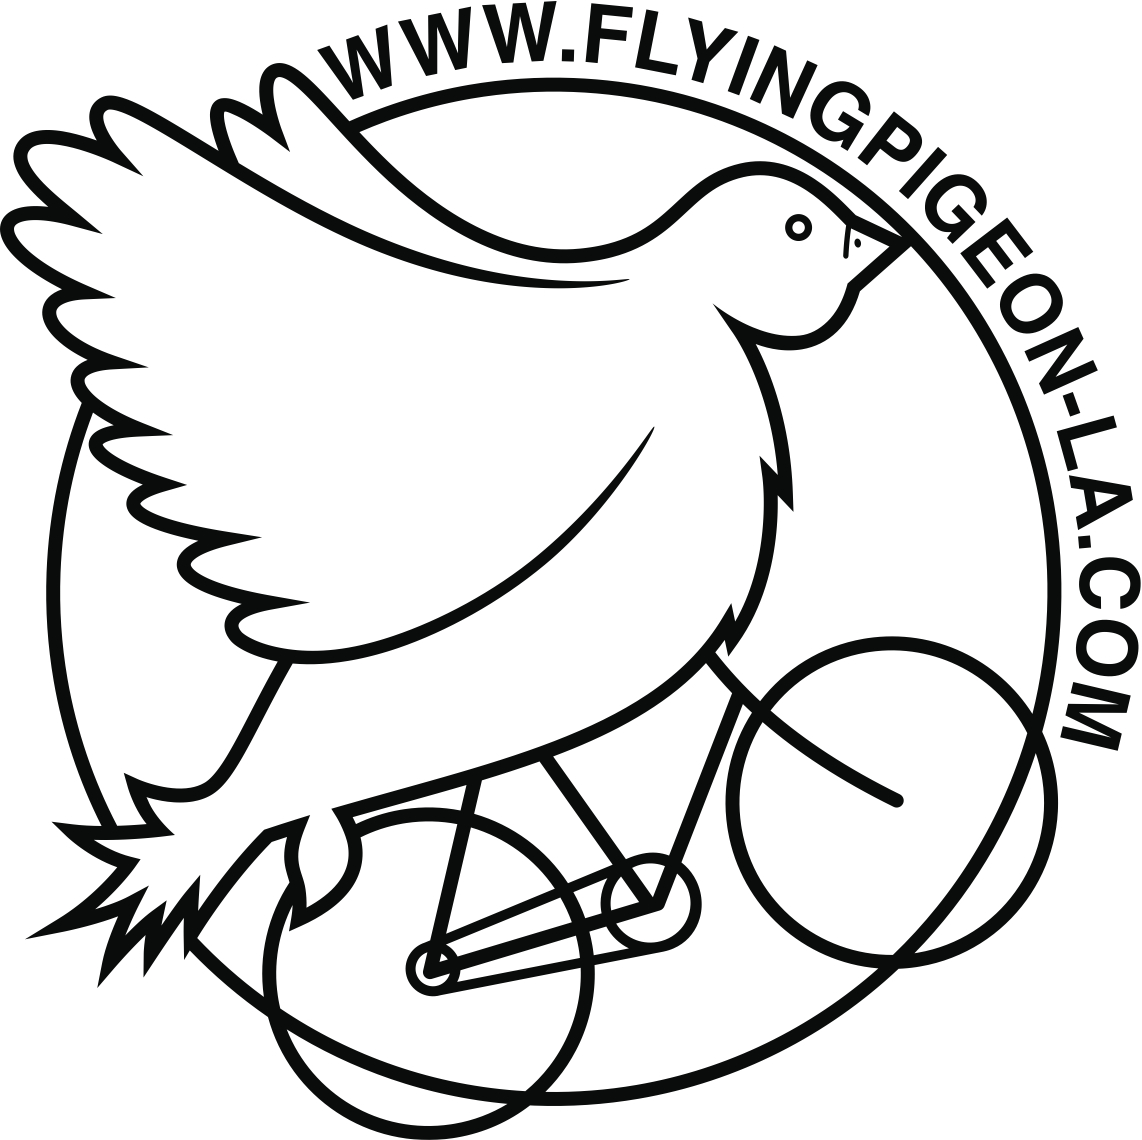 Flying Pigeon LA logo